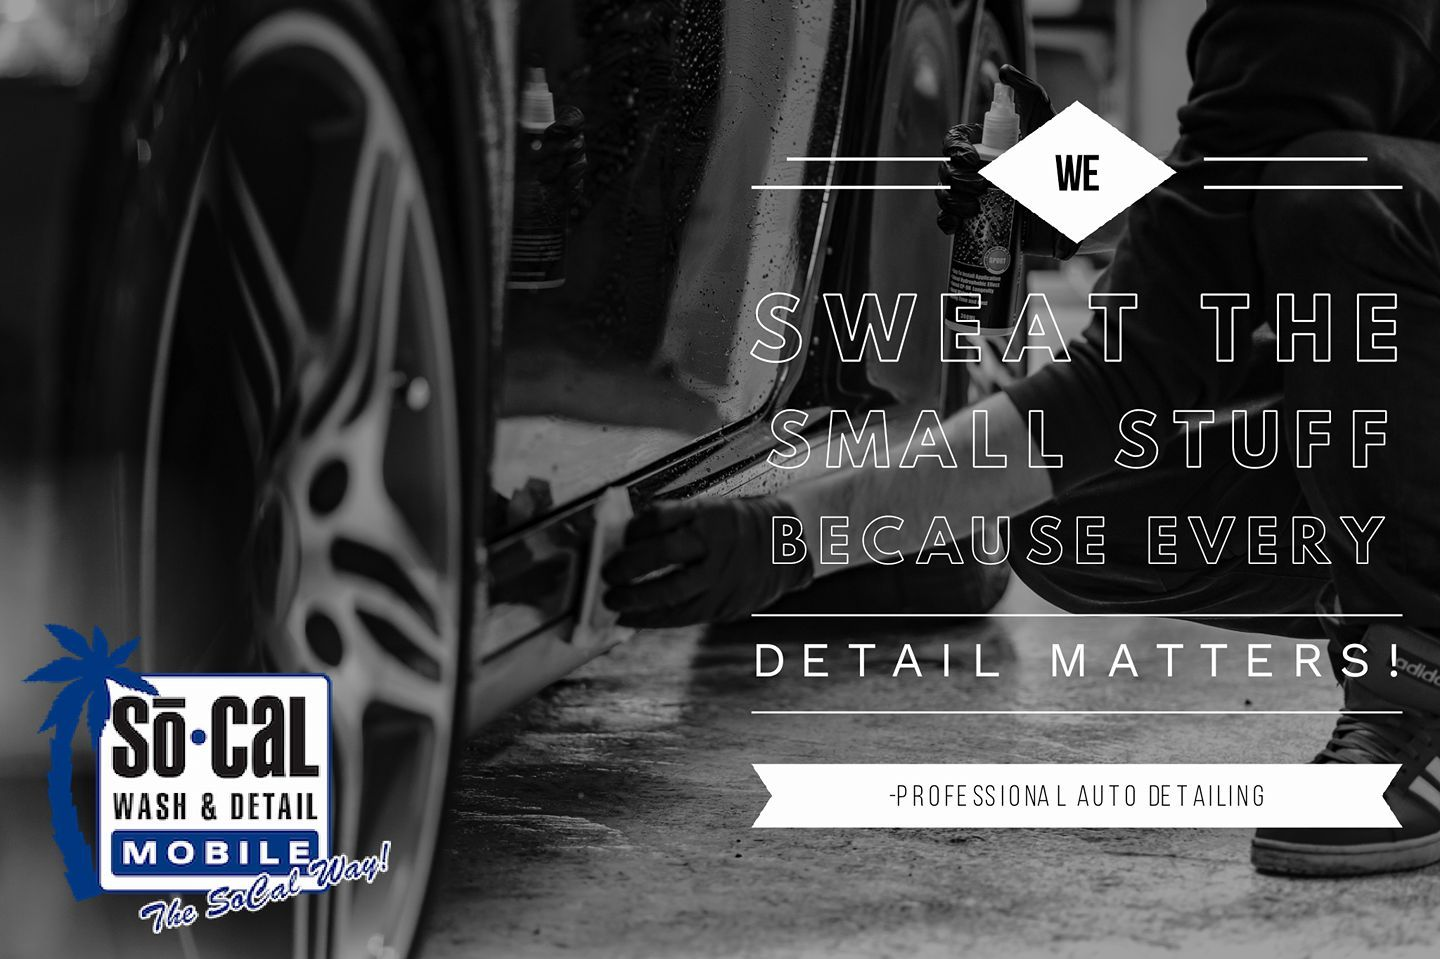 San Diego Auto Detailing Service that comes to your front